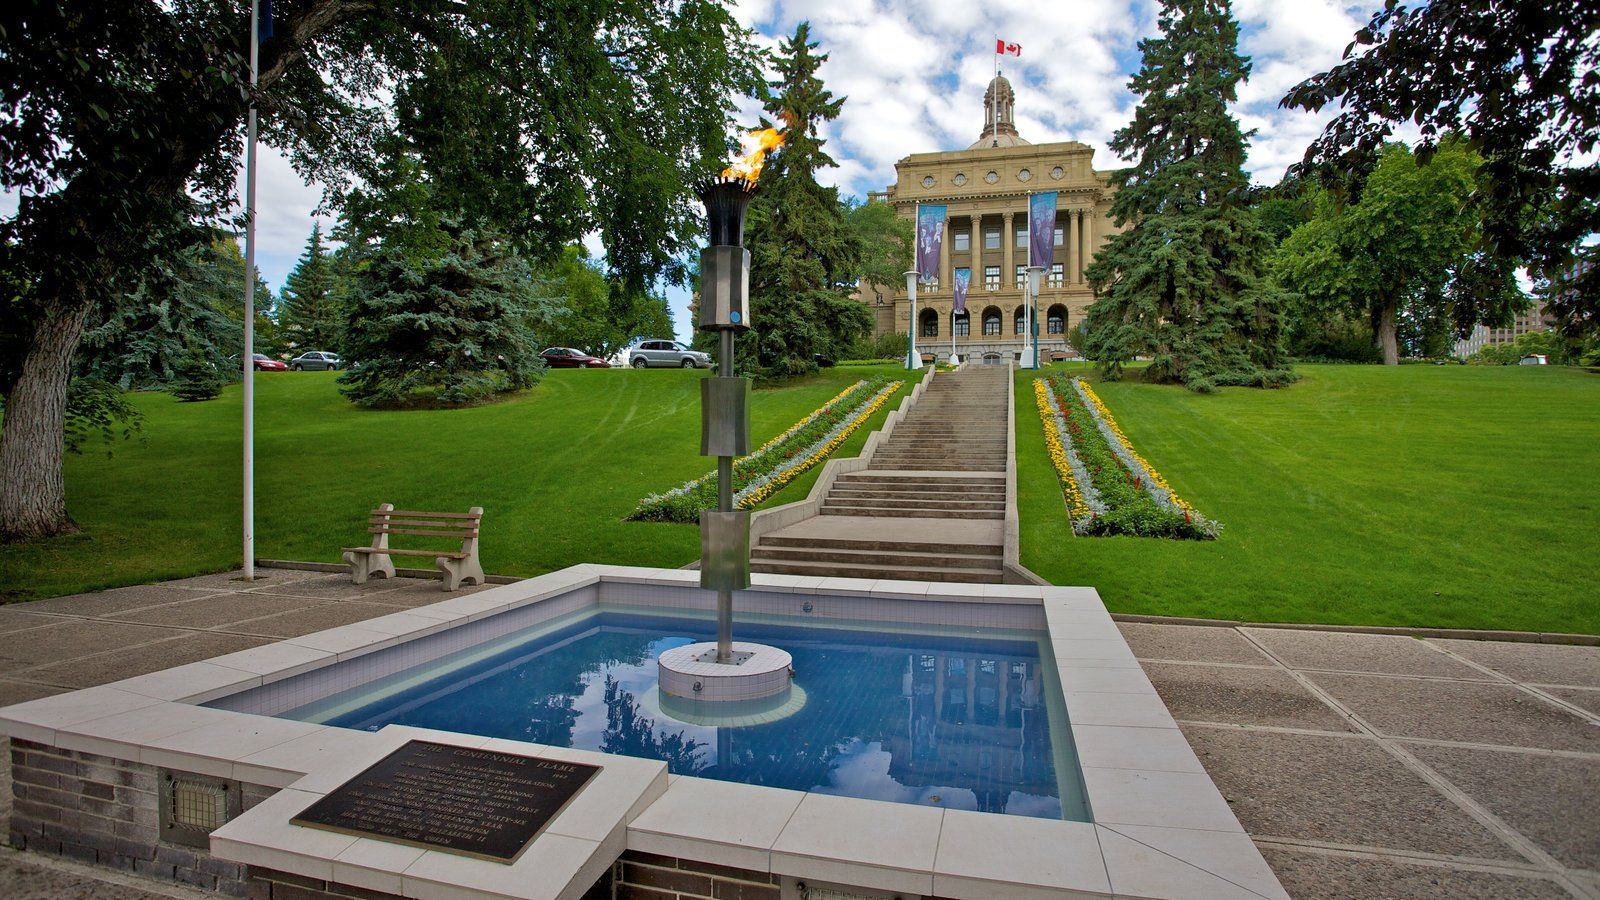 Alberta Legislature Building which includes a fountain, a park and outdoor art